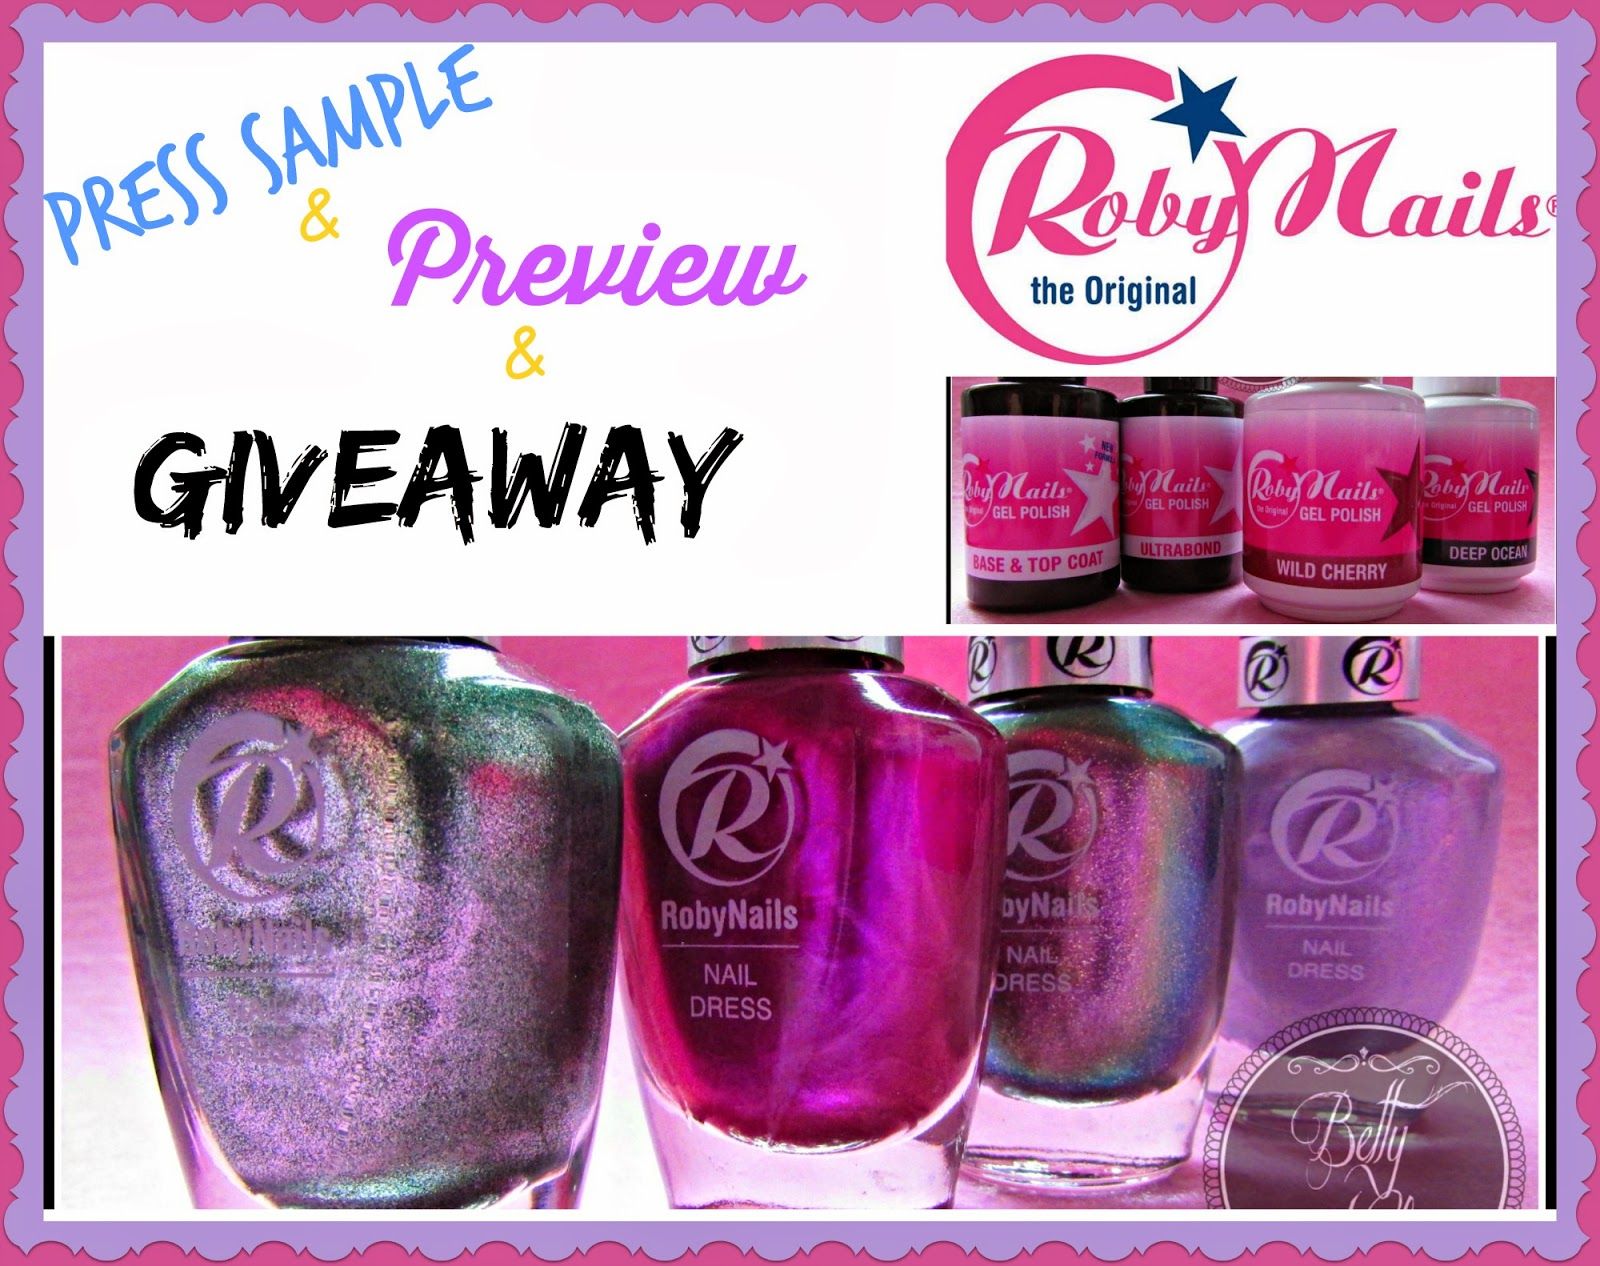 Betty Nails x Roby nails polish giveaway